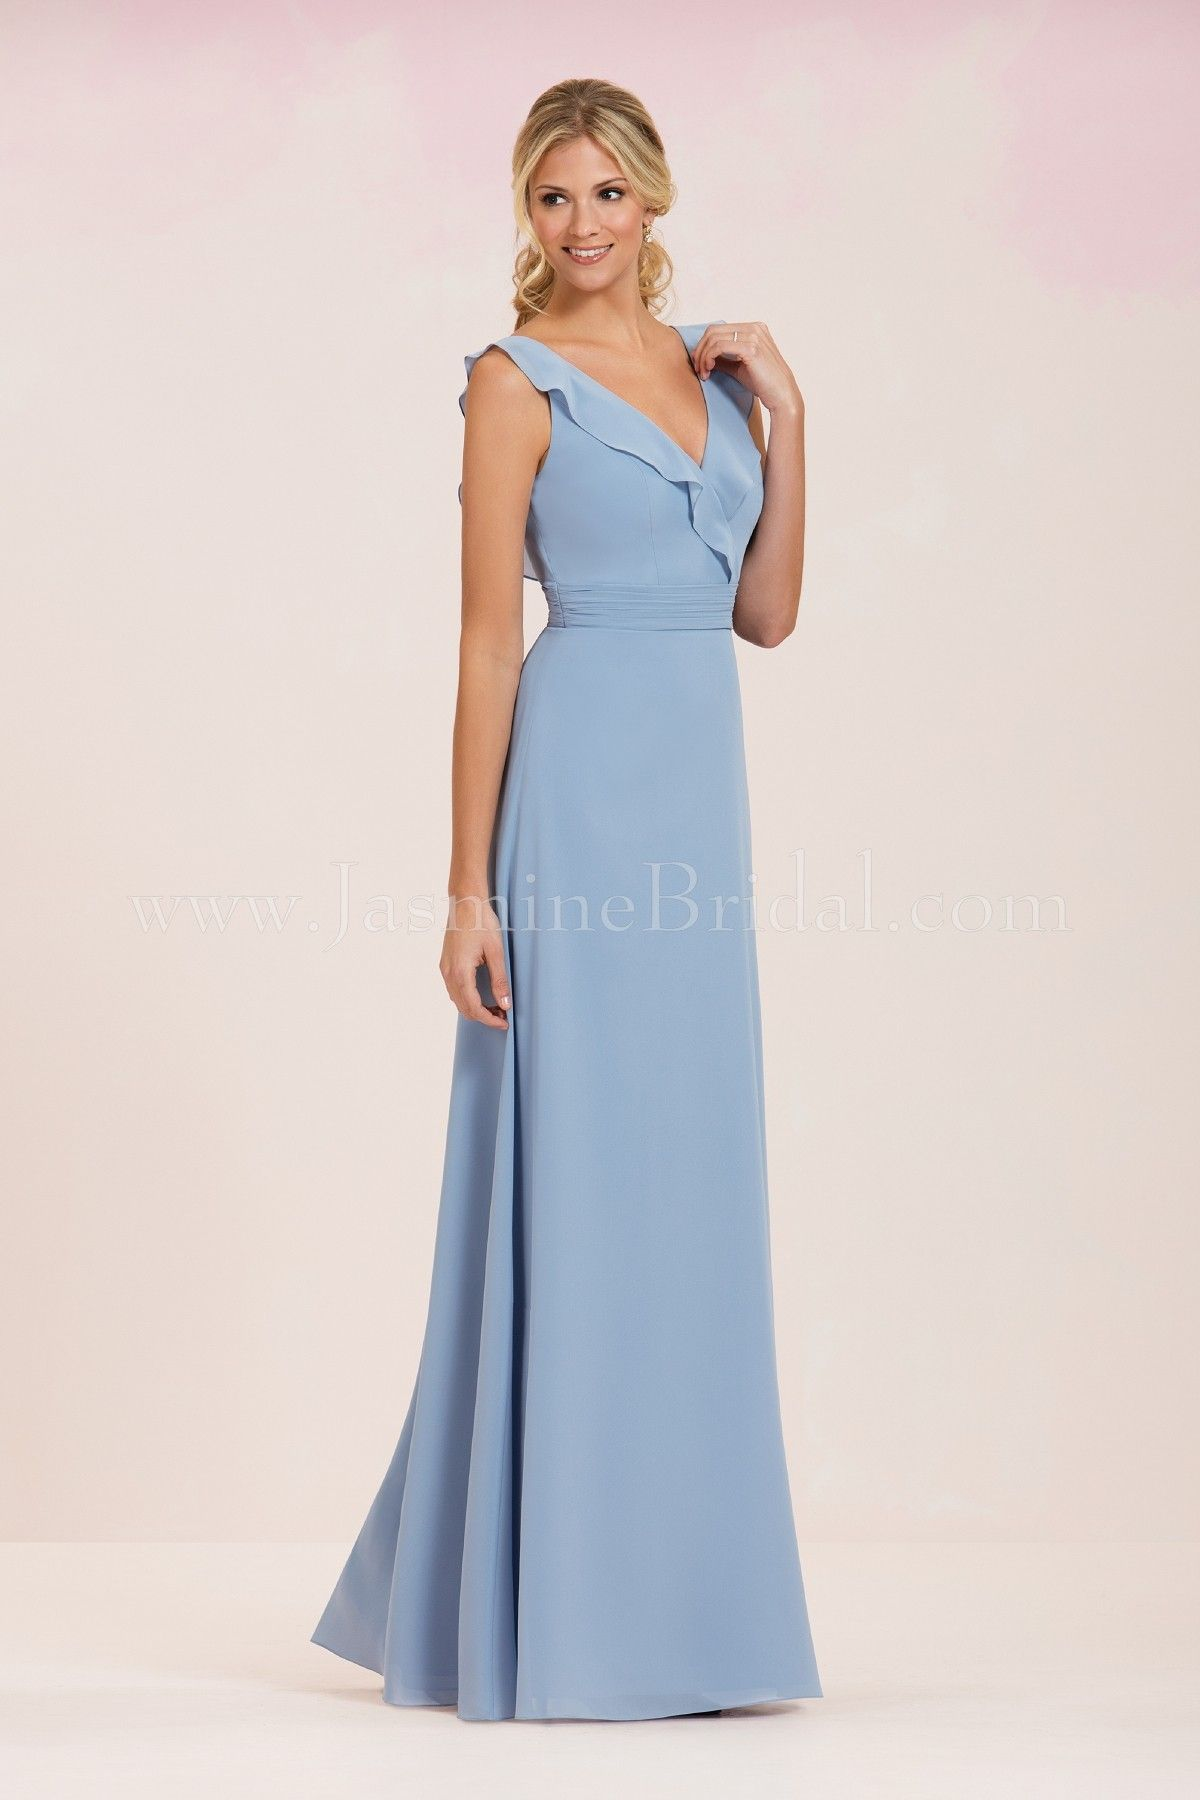 Jasmine bridal bridesmaid dress jasmine bridesmaids style p186053 in jasmine bridal bridesmaid dress jasmine bridesmaids style p186053 in cornflower ombrellifo Images